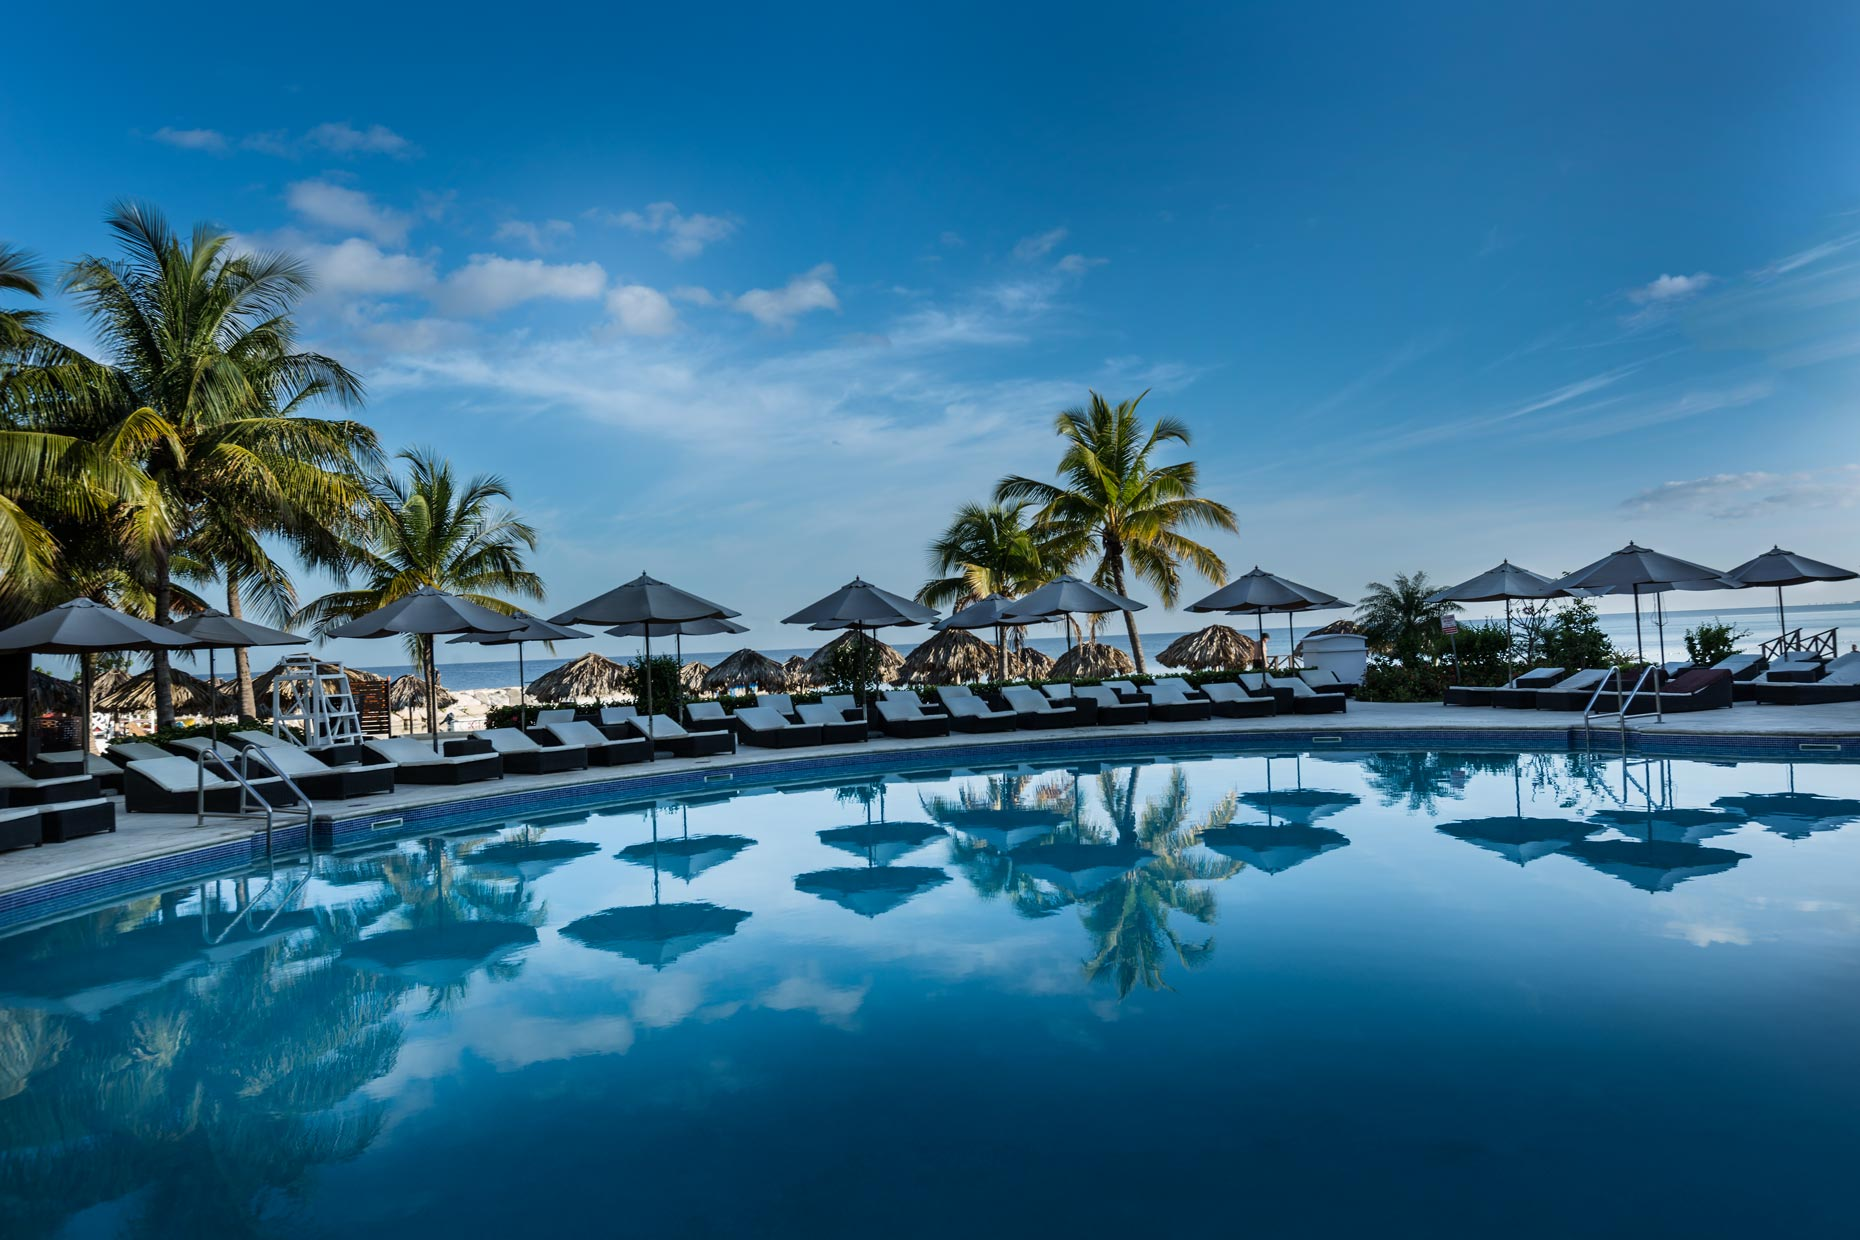 Hotel & Resort Photography | Montego Bay Jamaica Pool